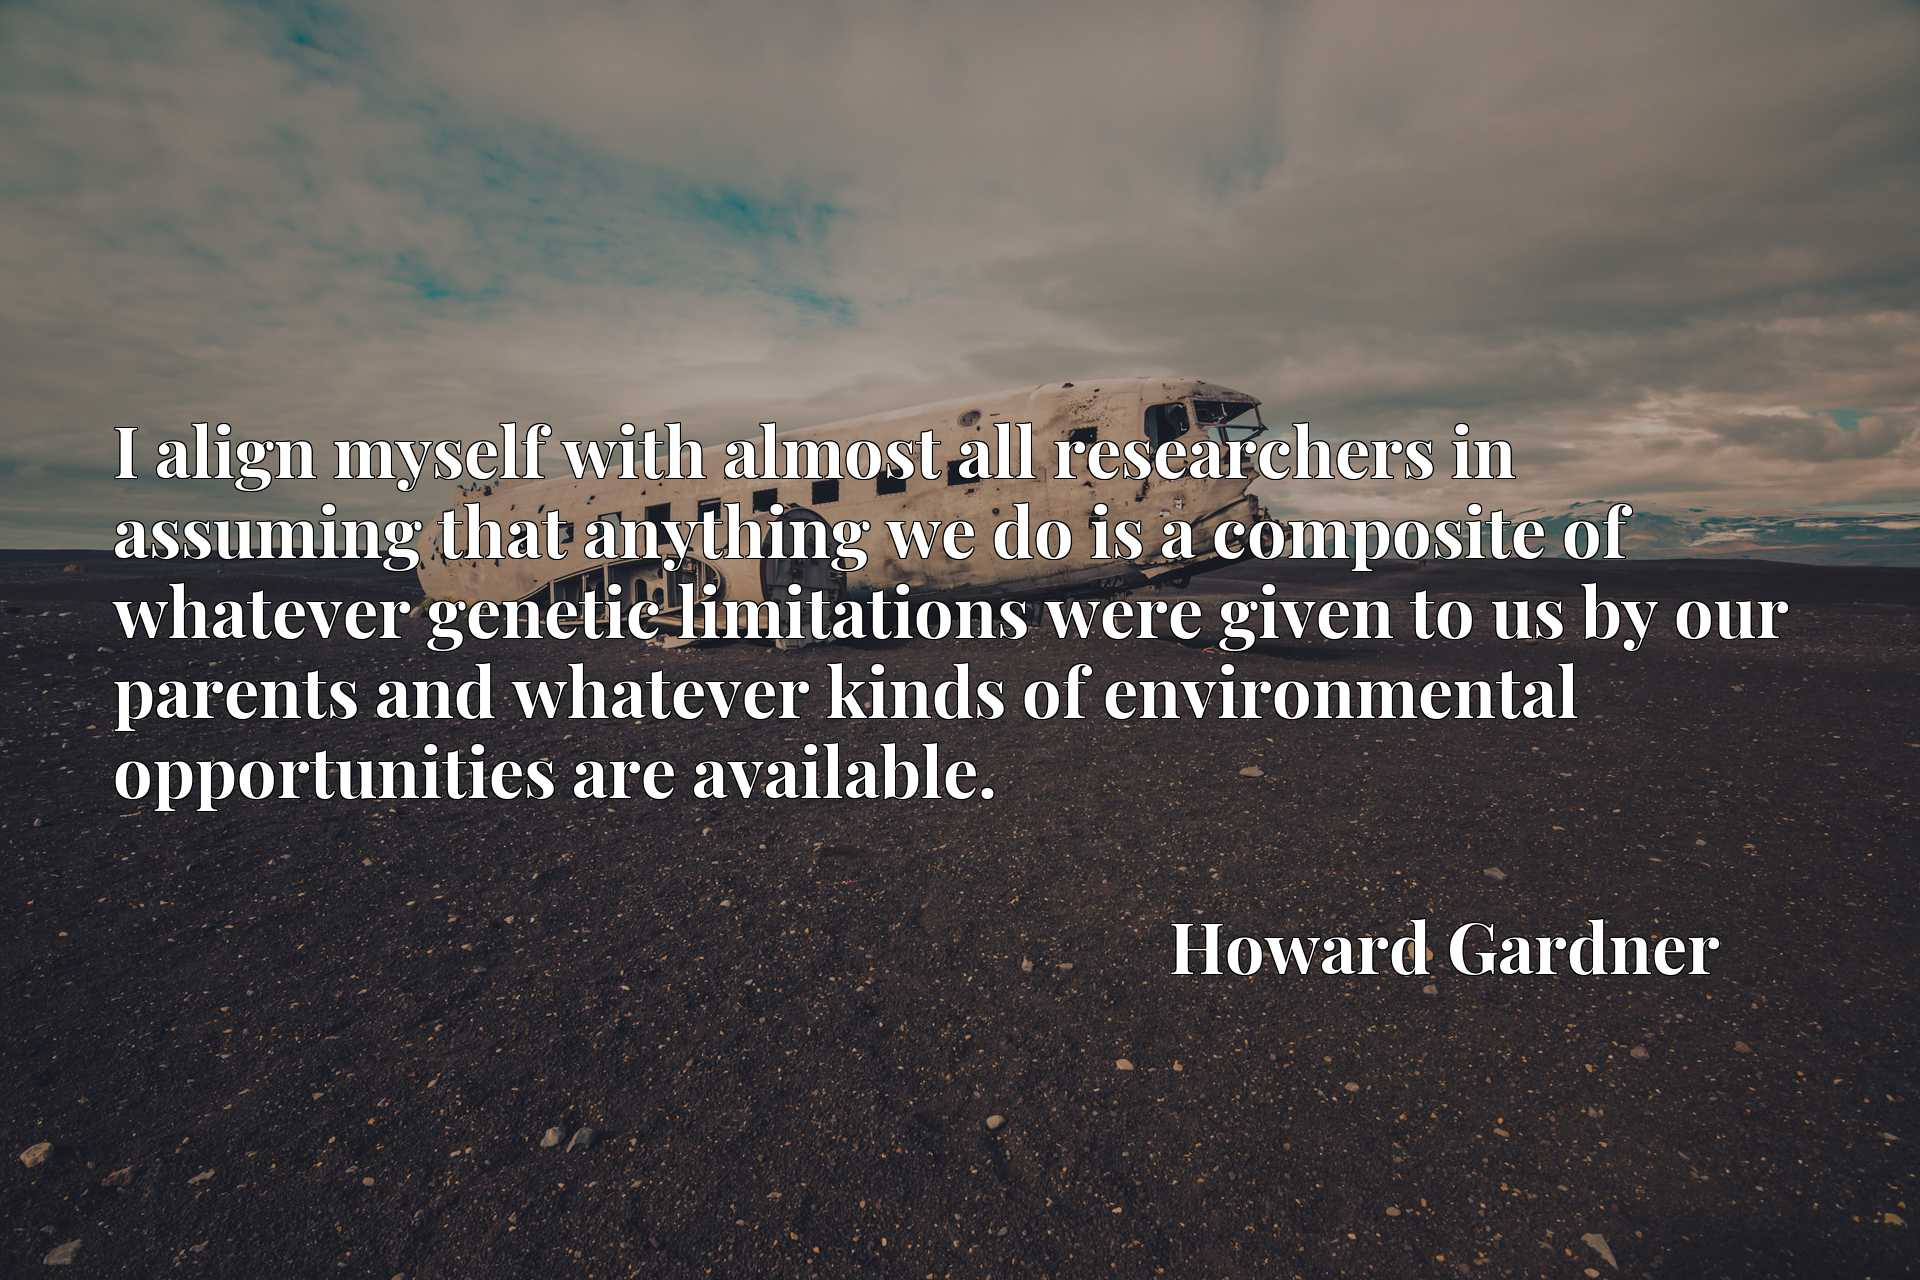 I align myself with almost all researchers in assuming that anything we do is a composite of whatever genetic limitations were given to us by our parents and whatever kinds of environmental opportunities are available.